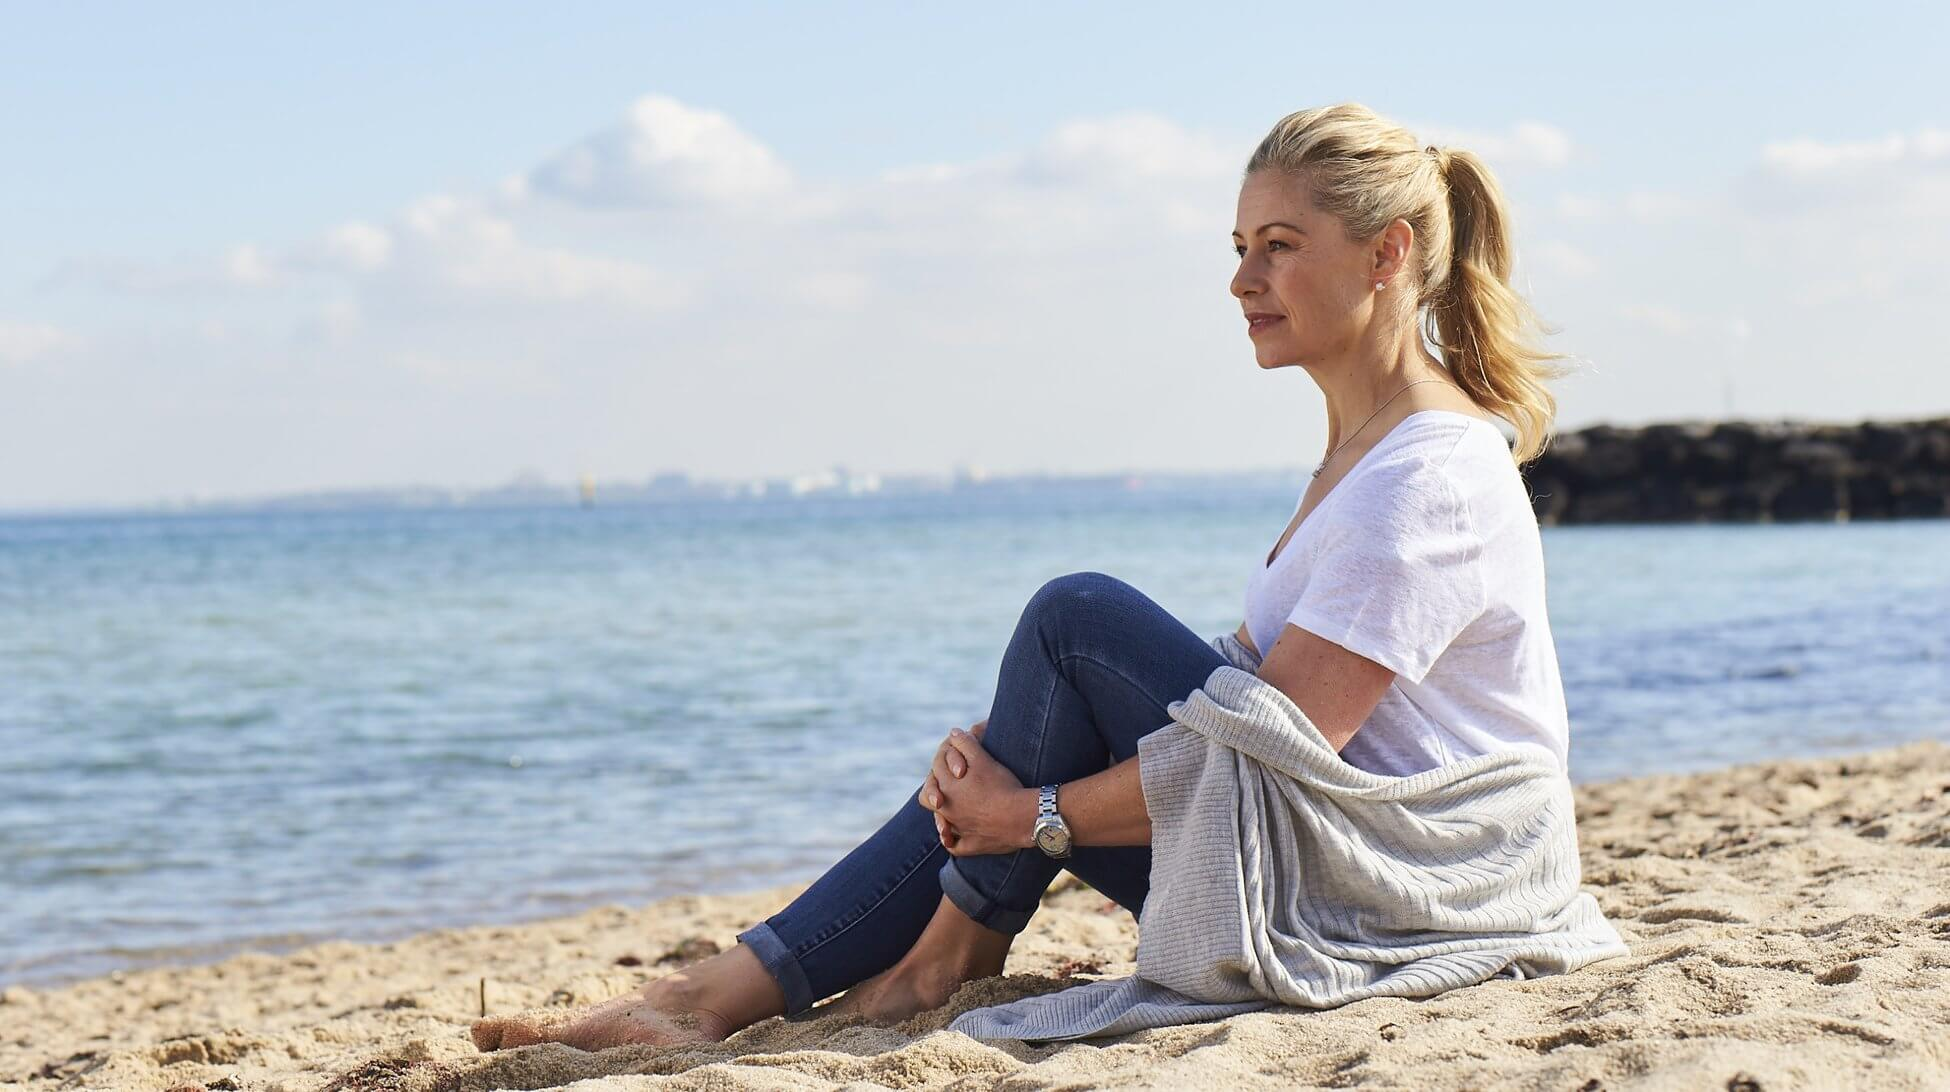 Alisa Camplin: How to get out of a rut